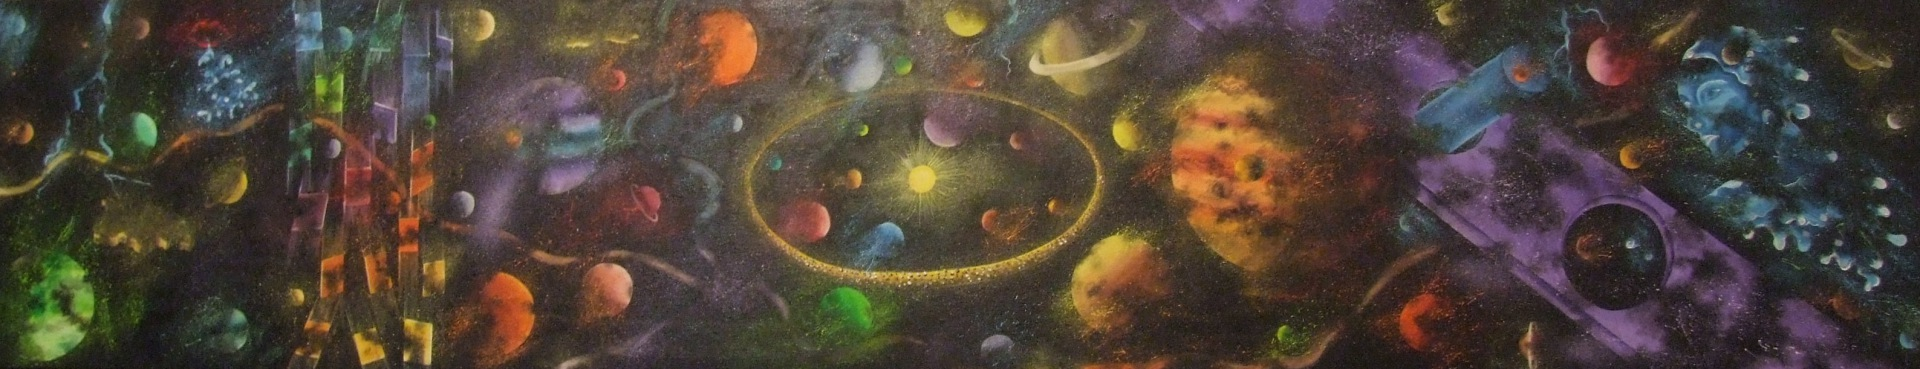 Universe 174 x 34 cm - oil on canvas